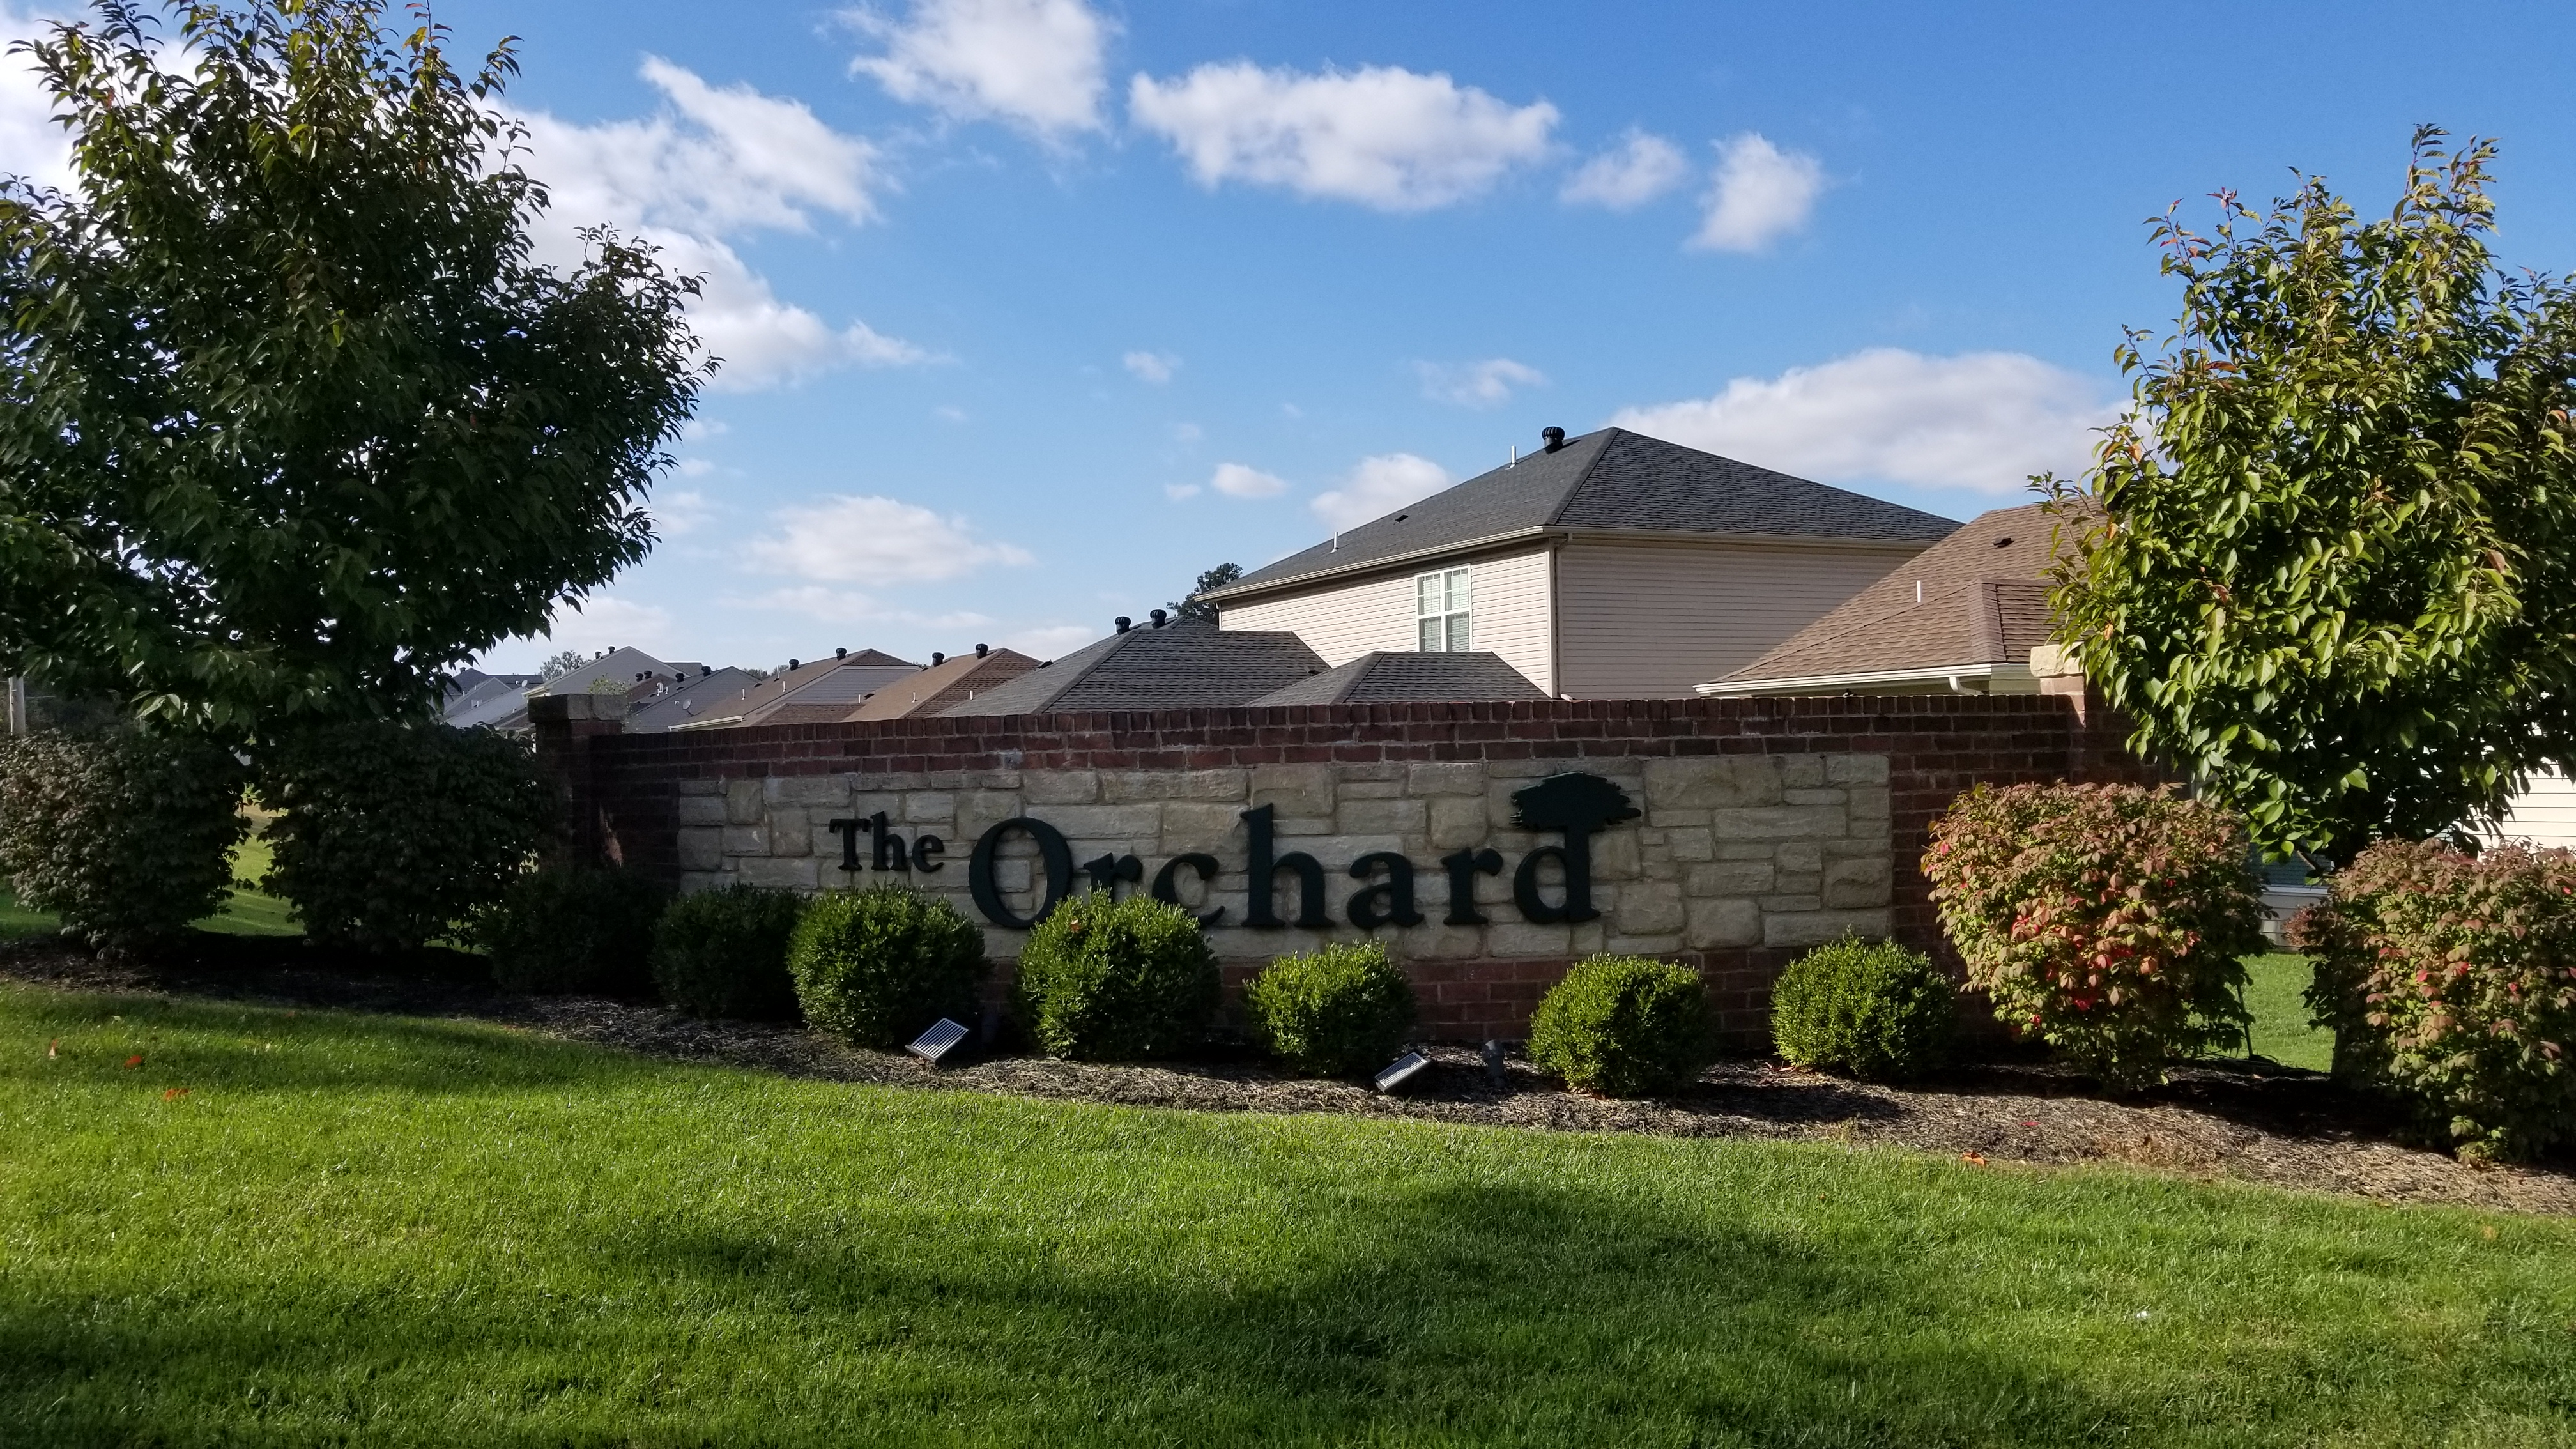 Evansville Homes for Sale in The Orchard Subdivision in Evansville